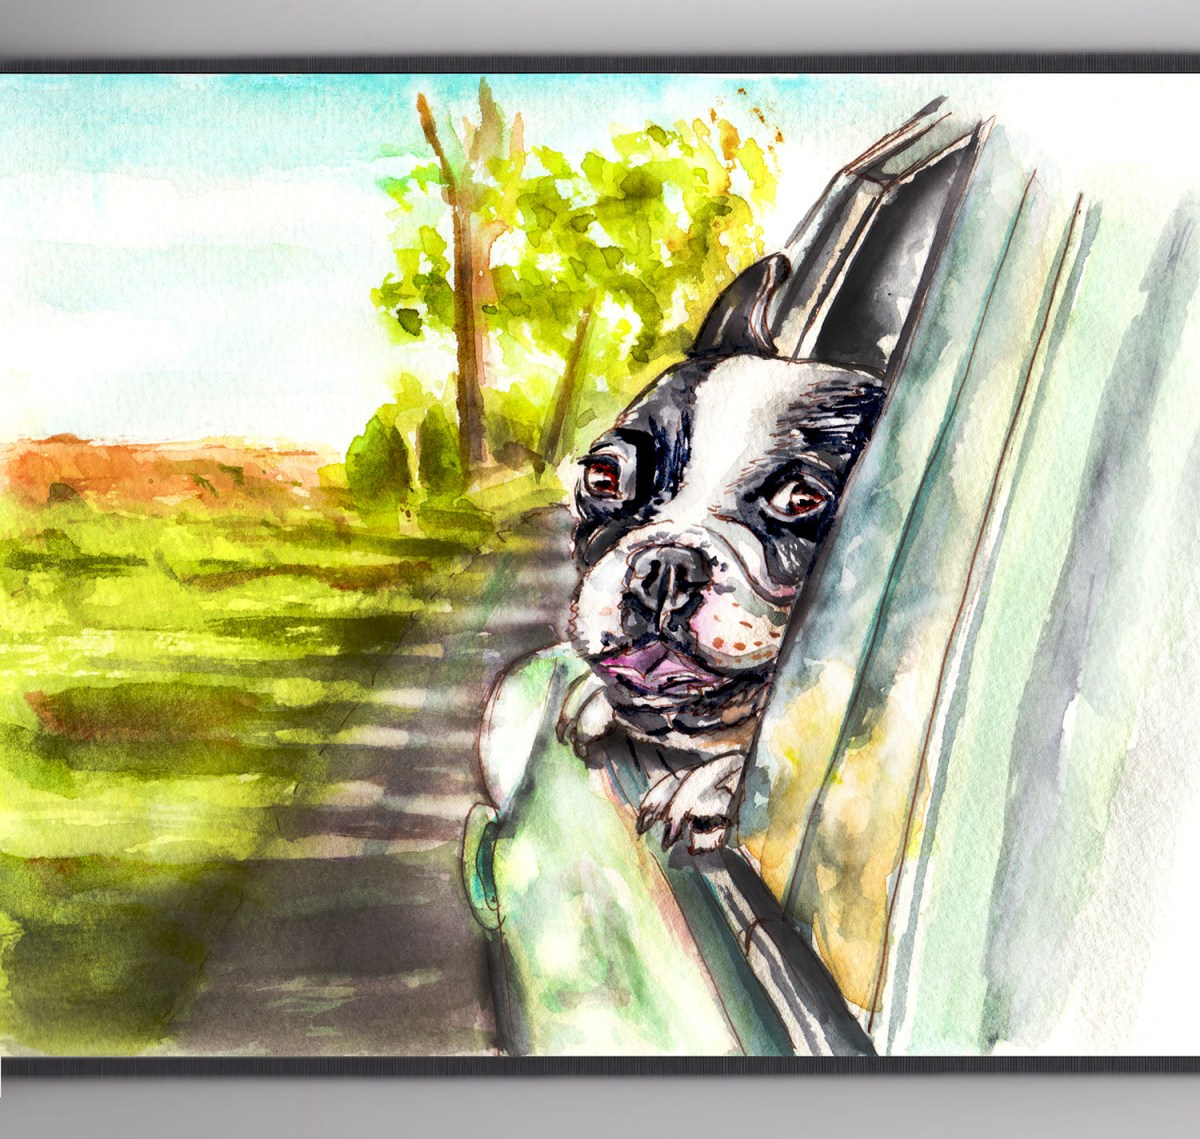 #WorldWatercolorGroup - Day 10 - A Seat By The Window - Dog Riding In Car - Doodlewash